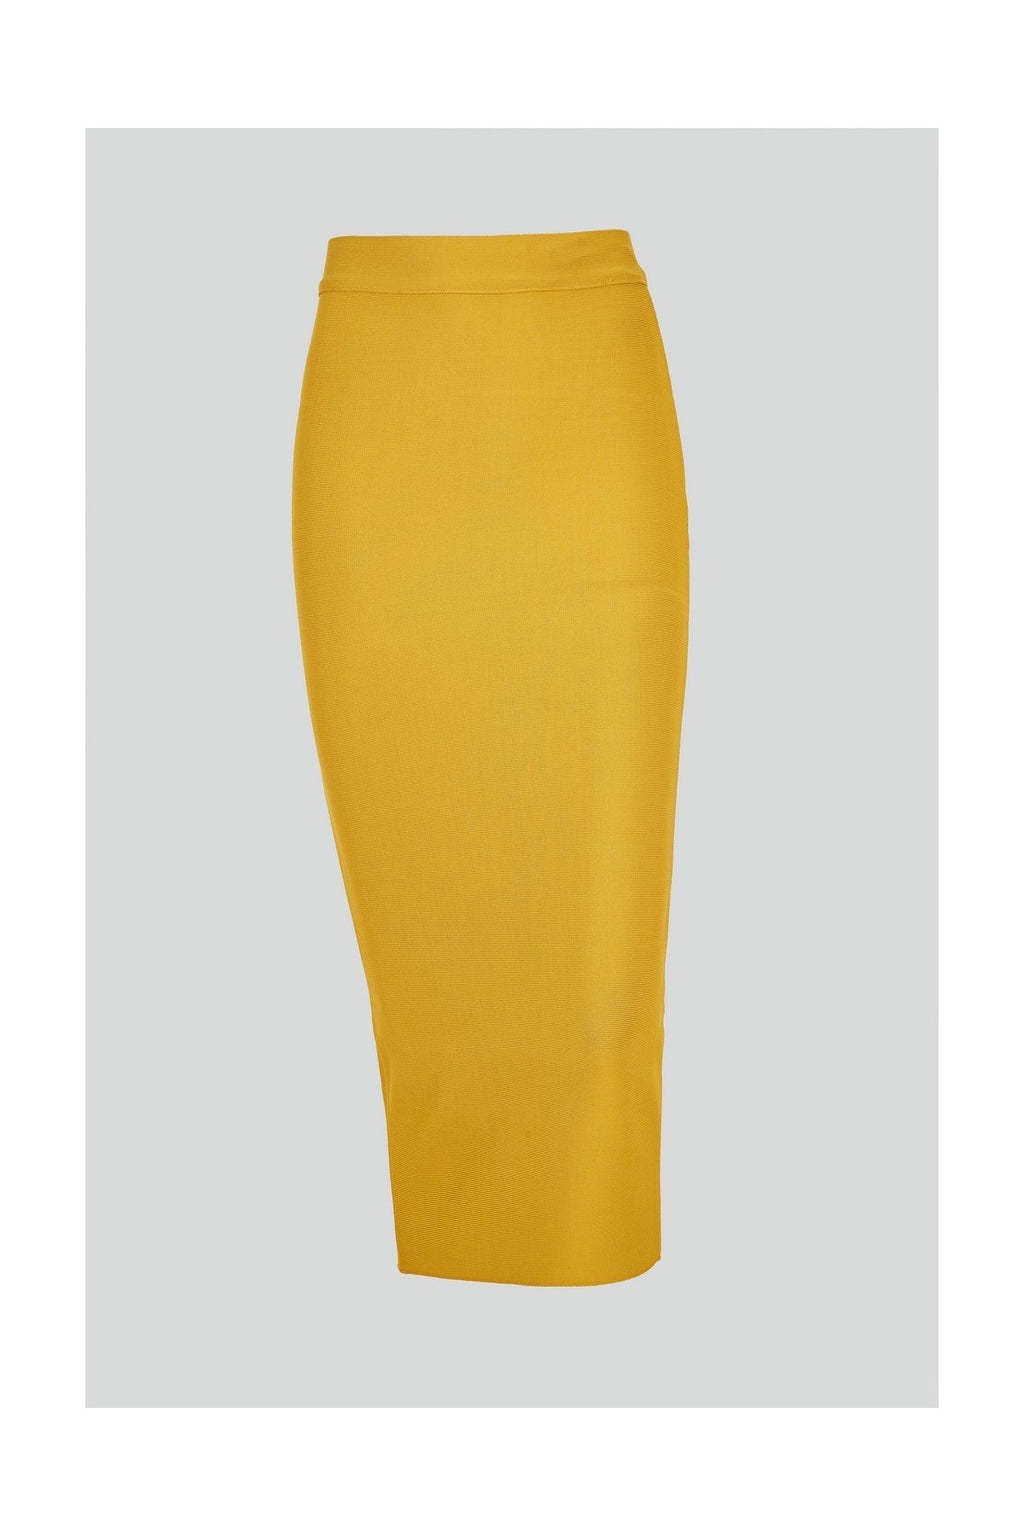 MIDAS GOLDEN YELLOW BANDAGE PENCIL SKIRT